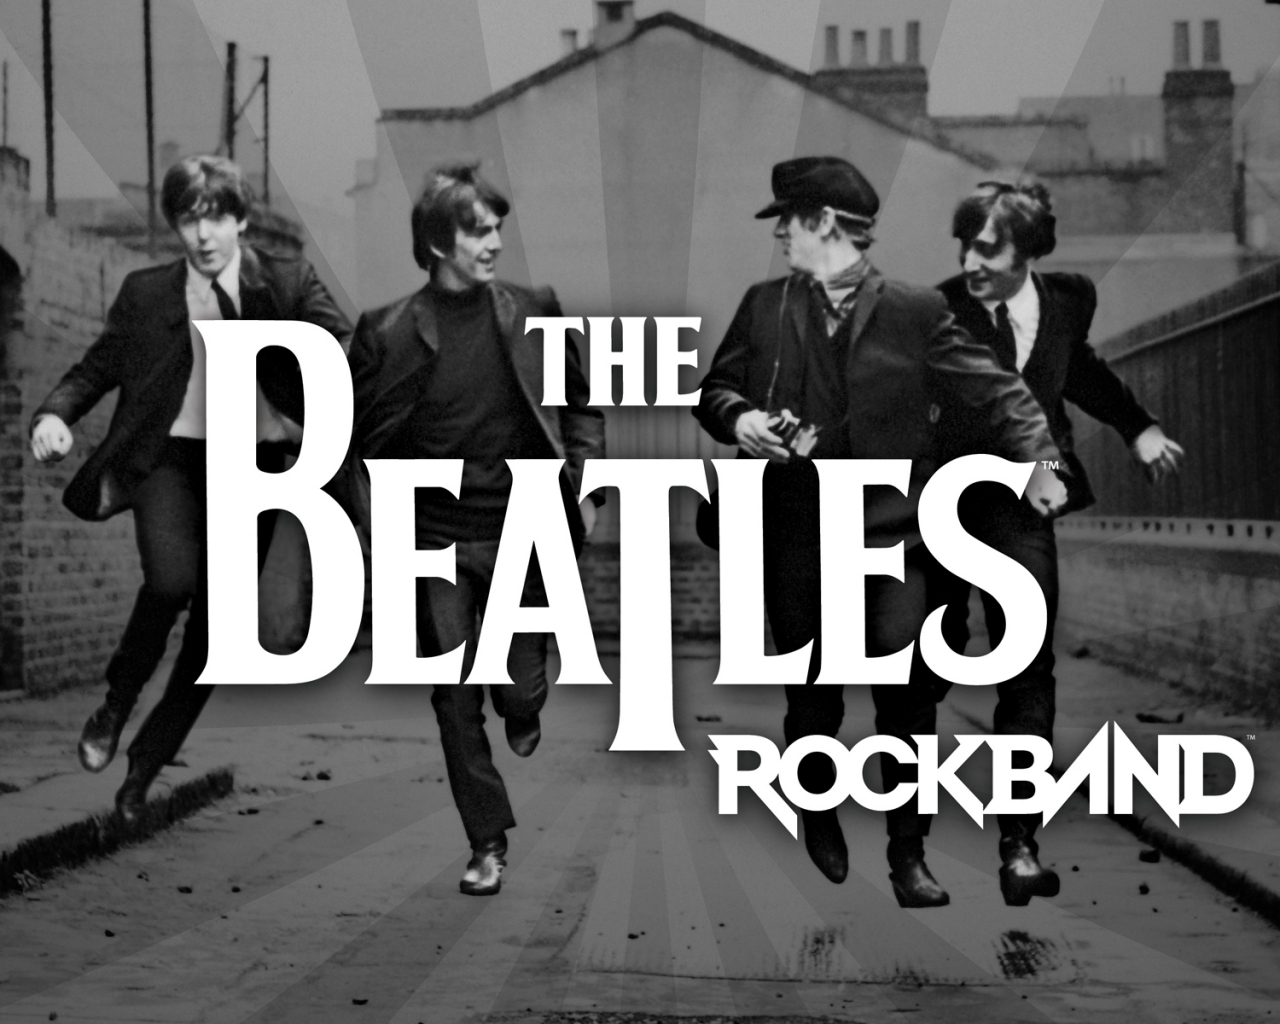 The Beatles Rock Band - 1280x1024